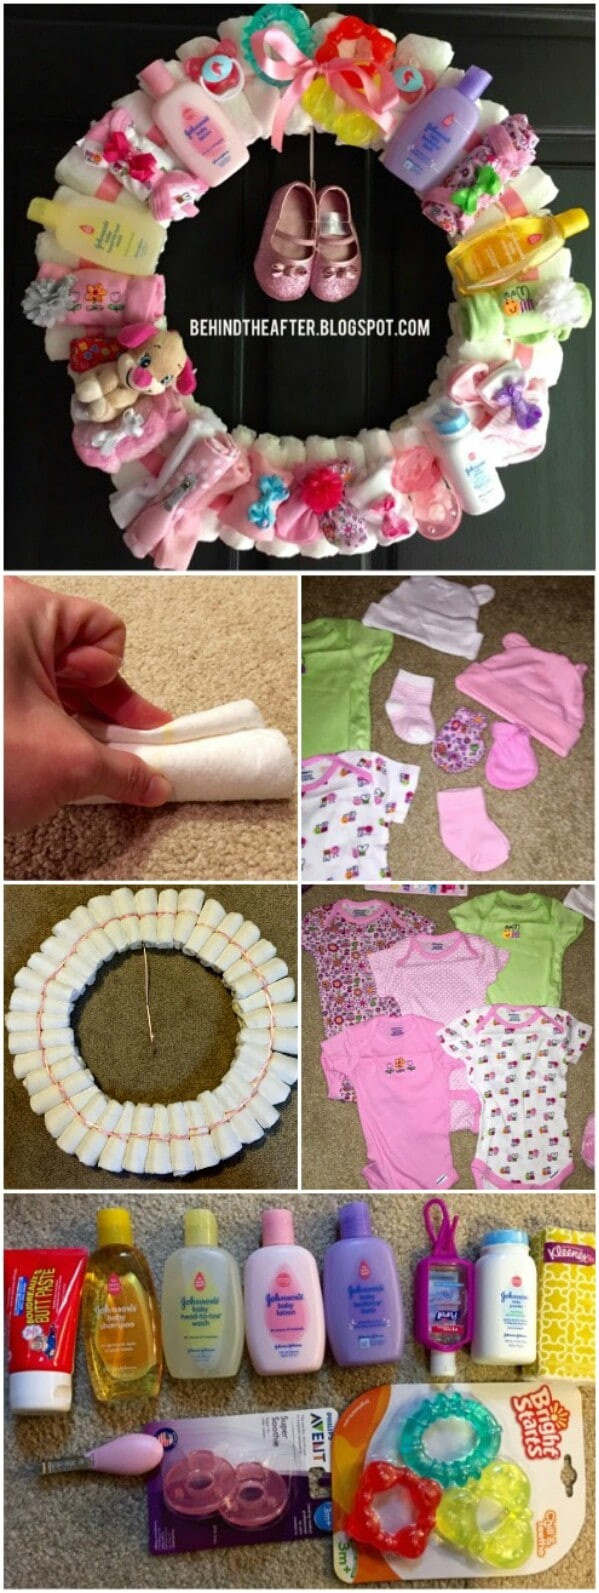 Babyshower Gift Ideas  25 Enchantingly Adorable Baby Shower Gift Ideas That Will